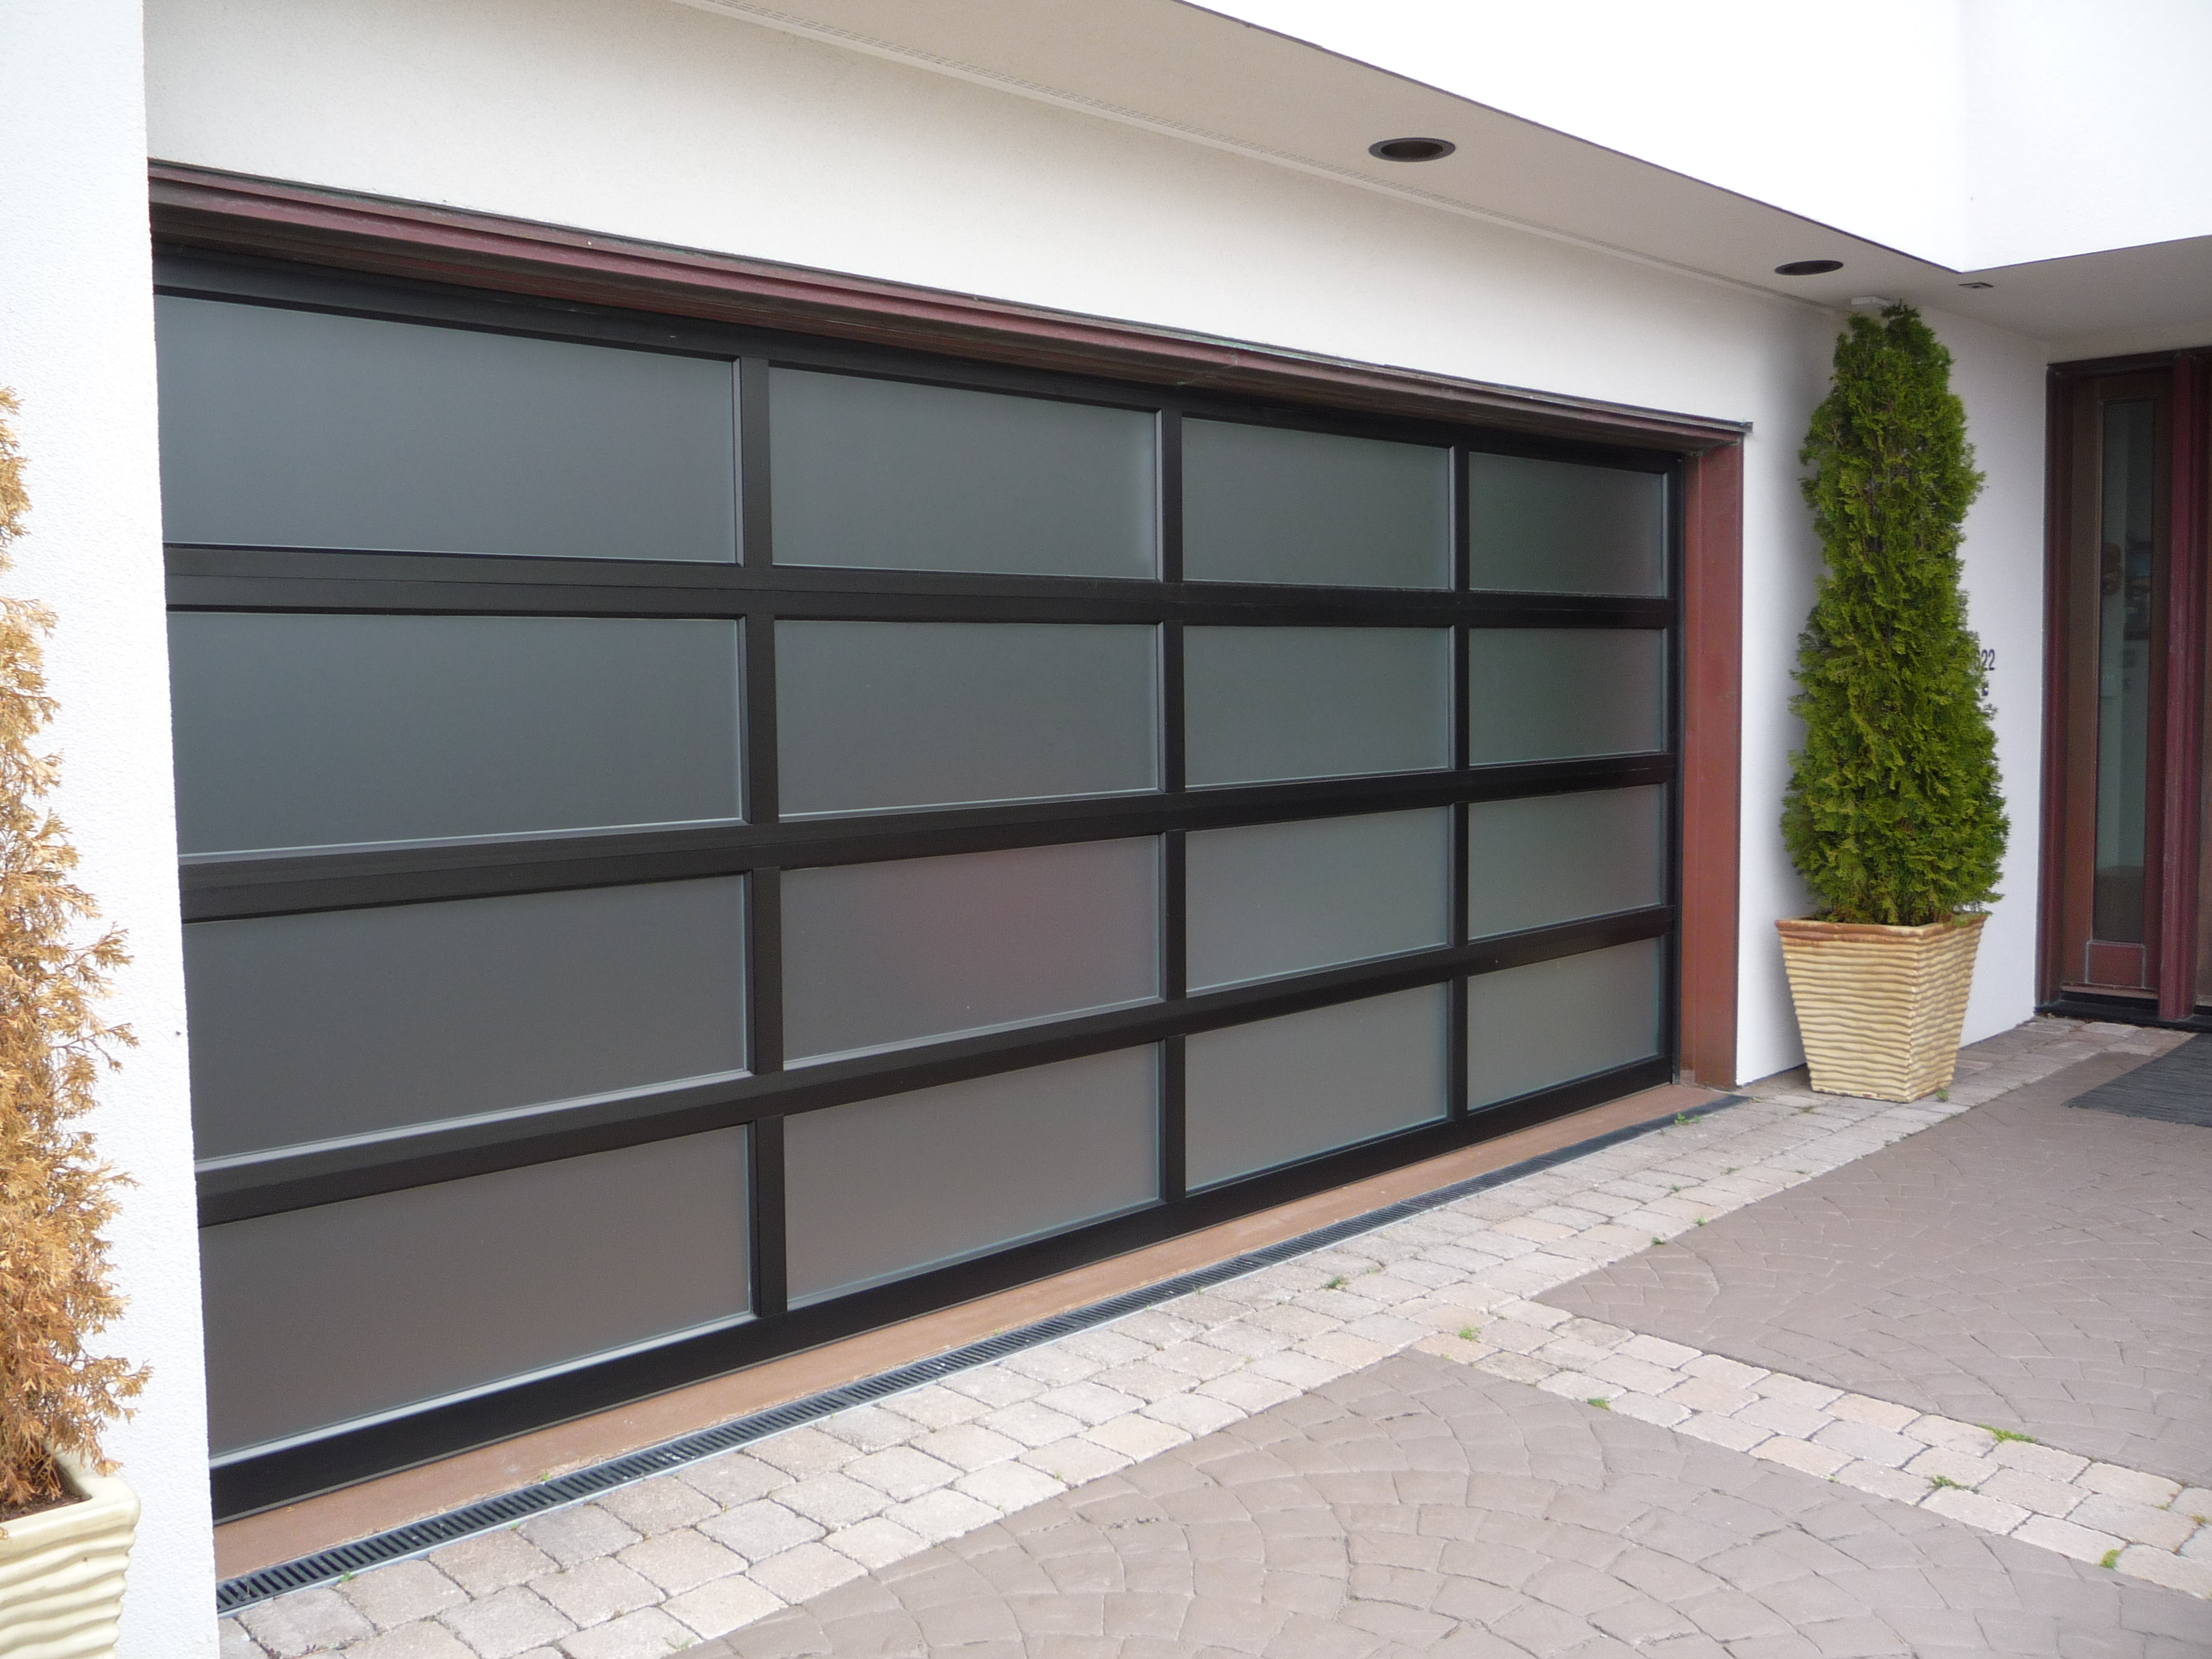 2736 #4F5930 Full View Aluminum View The Product Info Previous Next image Full View Aluminum Garage Doors 37233648